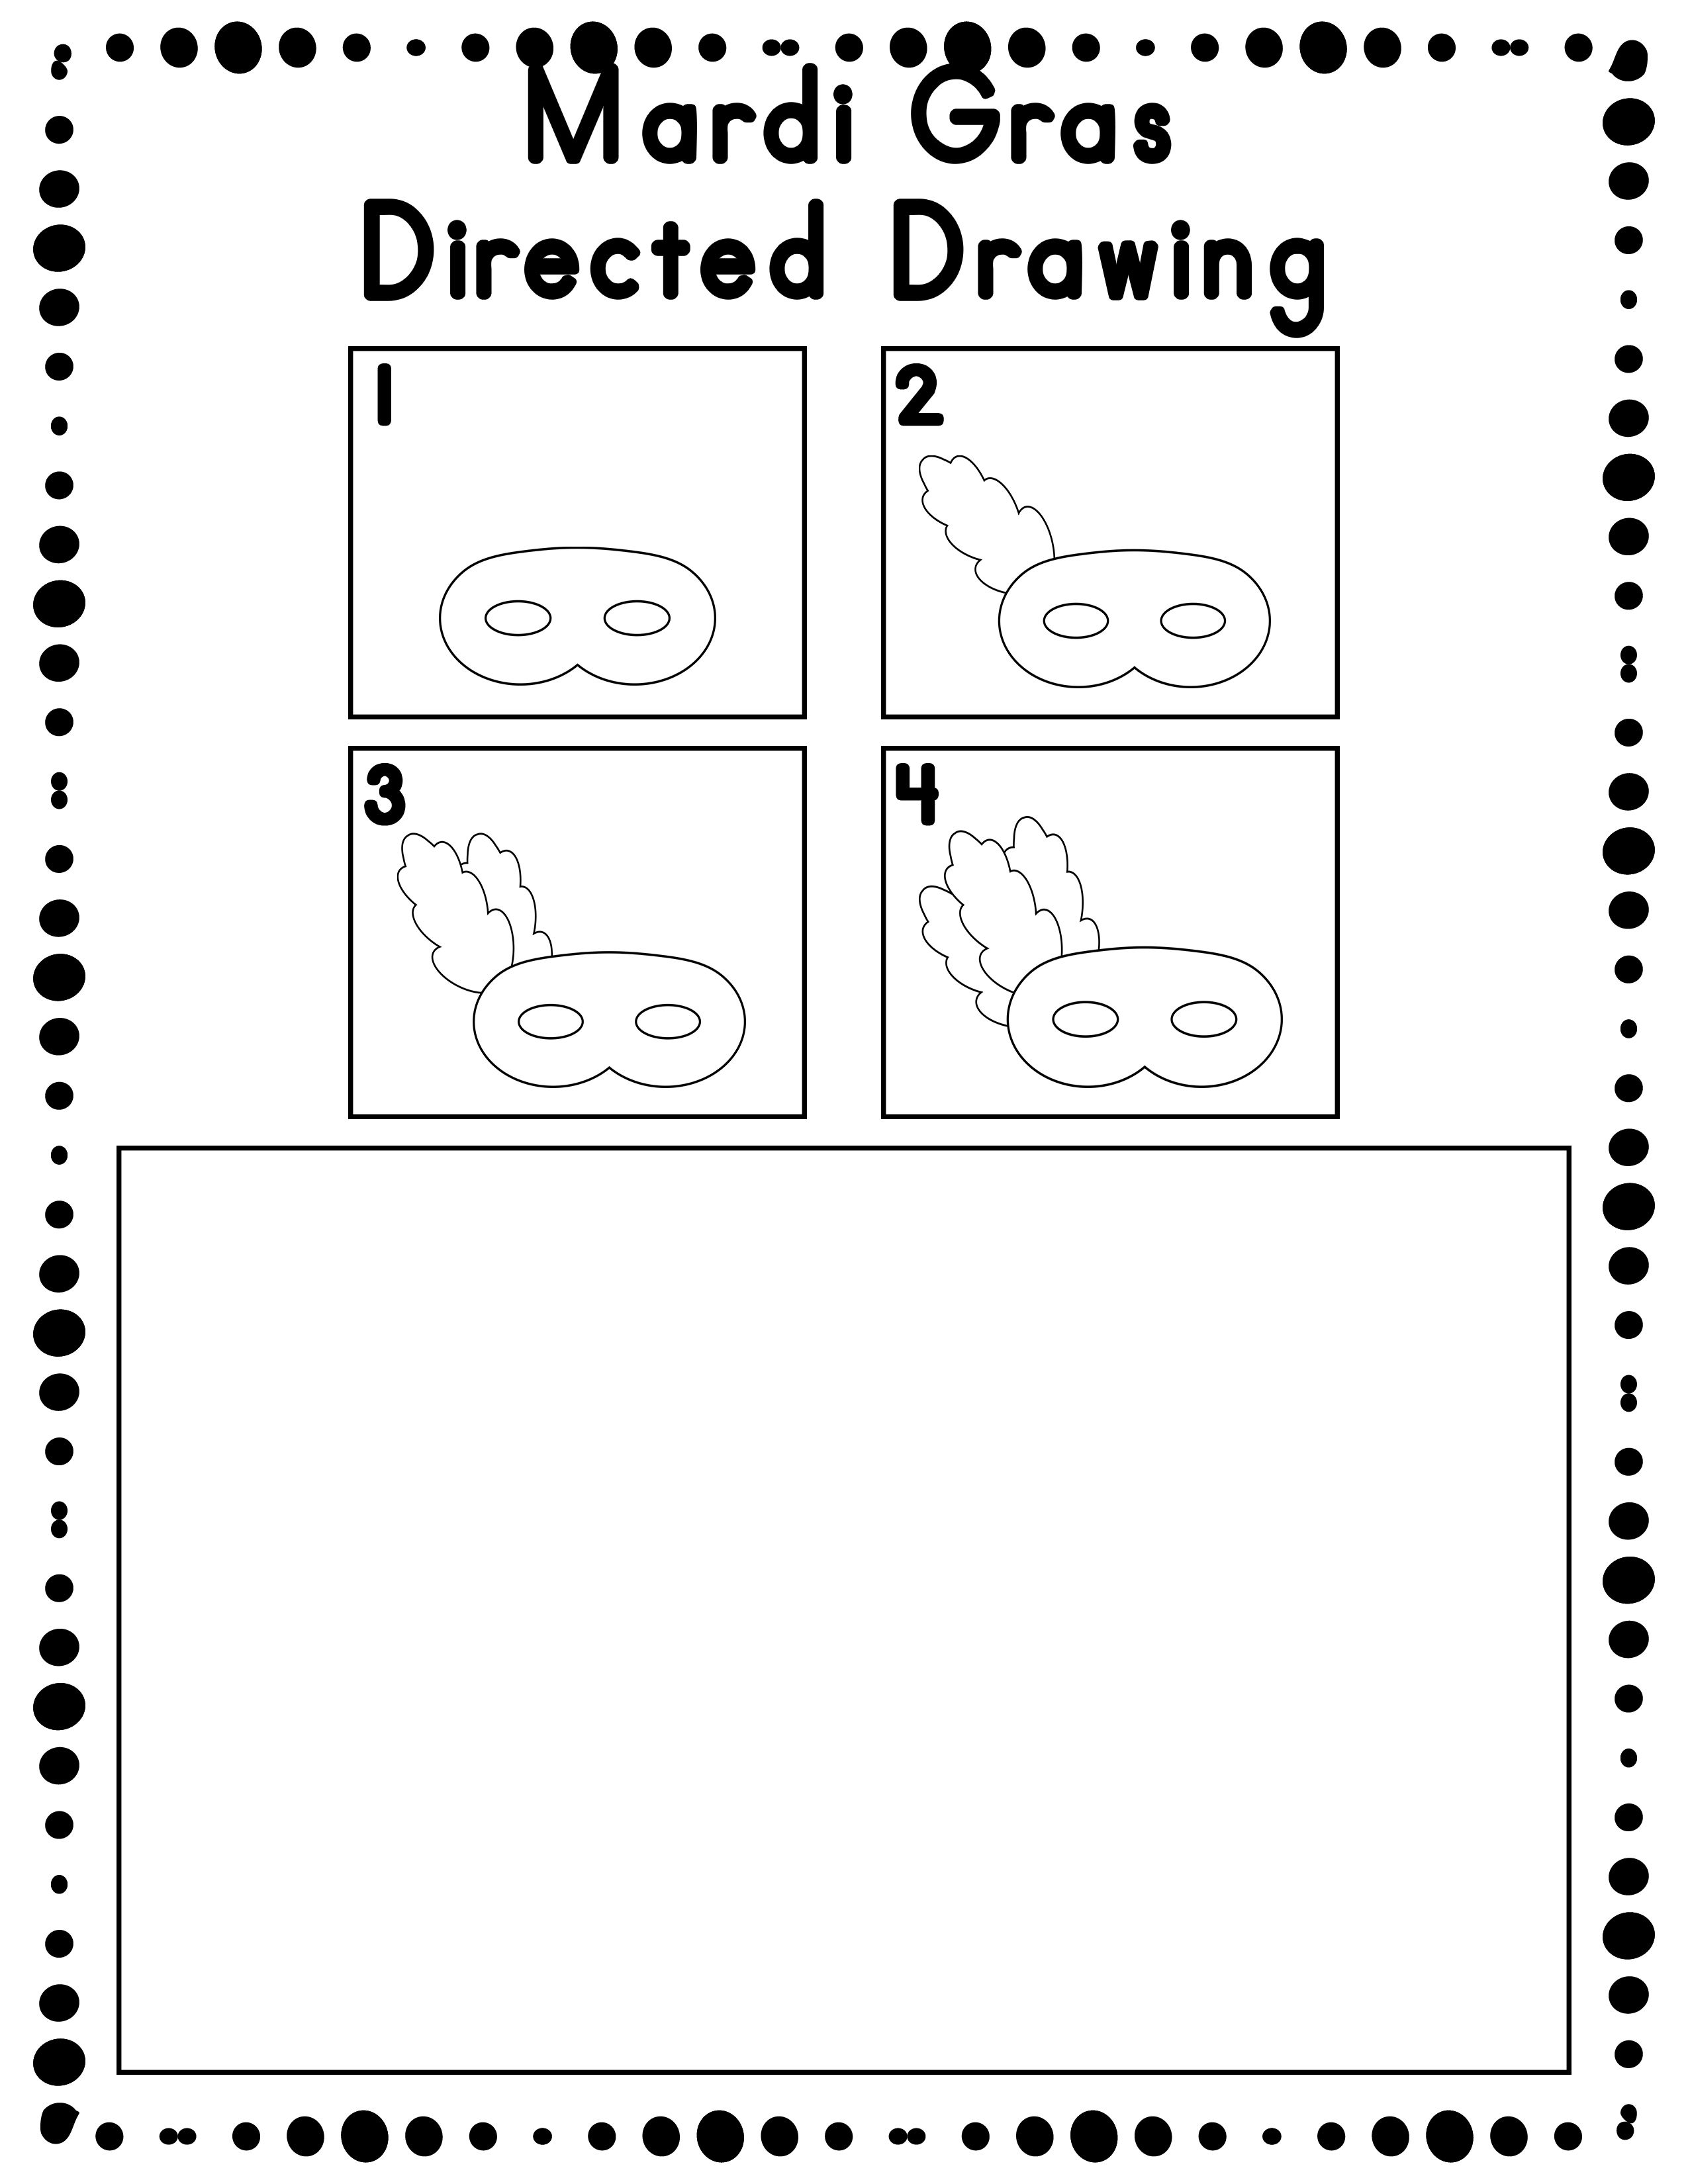 worksheet Mardi Gras Worksheets mardi gras directed drawing activity for including art in any worksheets